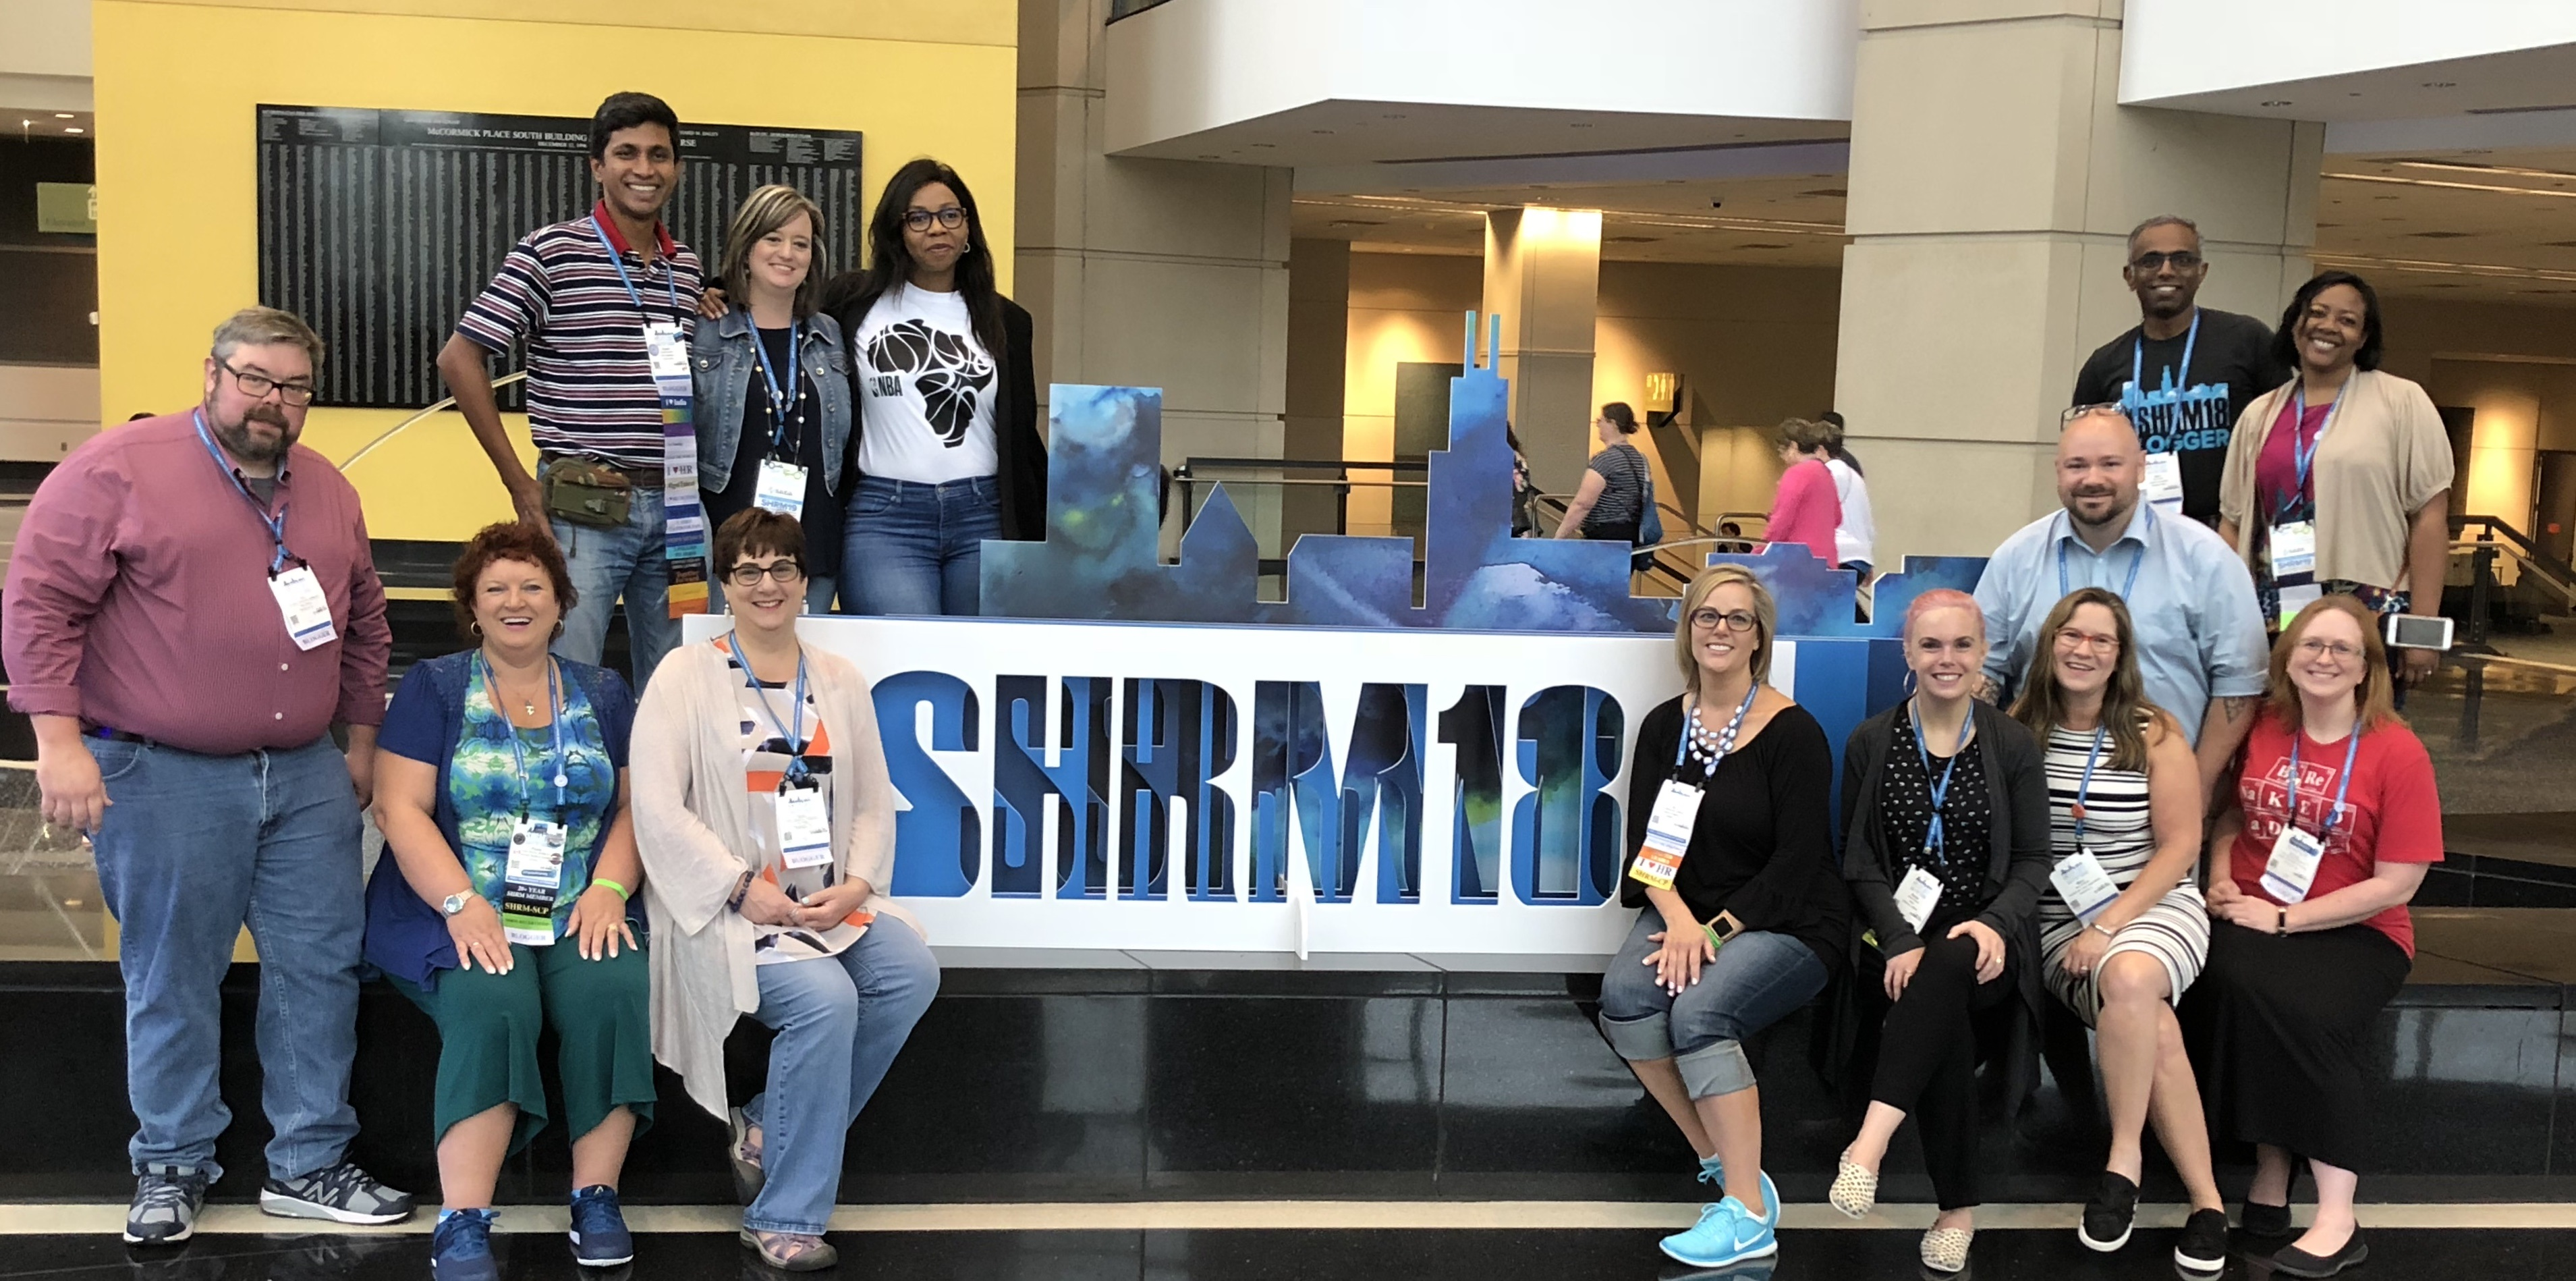 Row 1: Jon Thurmond, Paula Harvey, Anne Tomkinson, Kyra Matkovitch, Renee Robson, Mary Williams, Wendy Dailey. Row 2: Anish Aravind, Michelle Kolhoff, Mofota Sefali, Keith Enochs, Kavi, Jazmine Wilkes stand around the SHRM18 sign